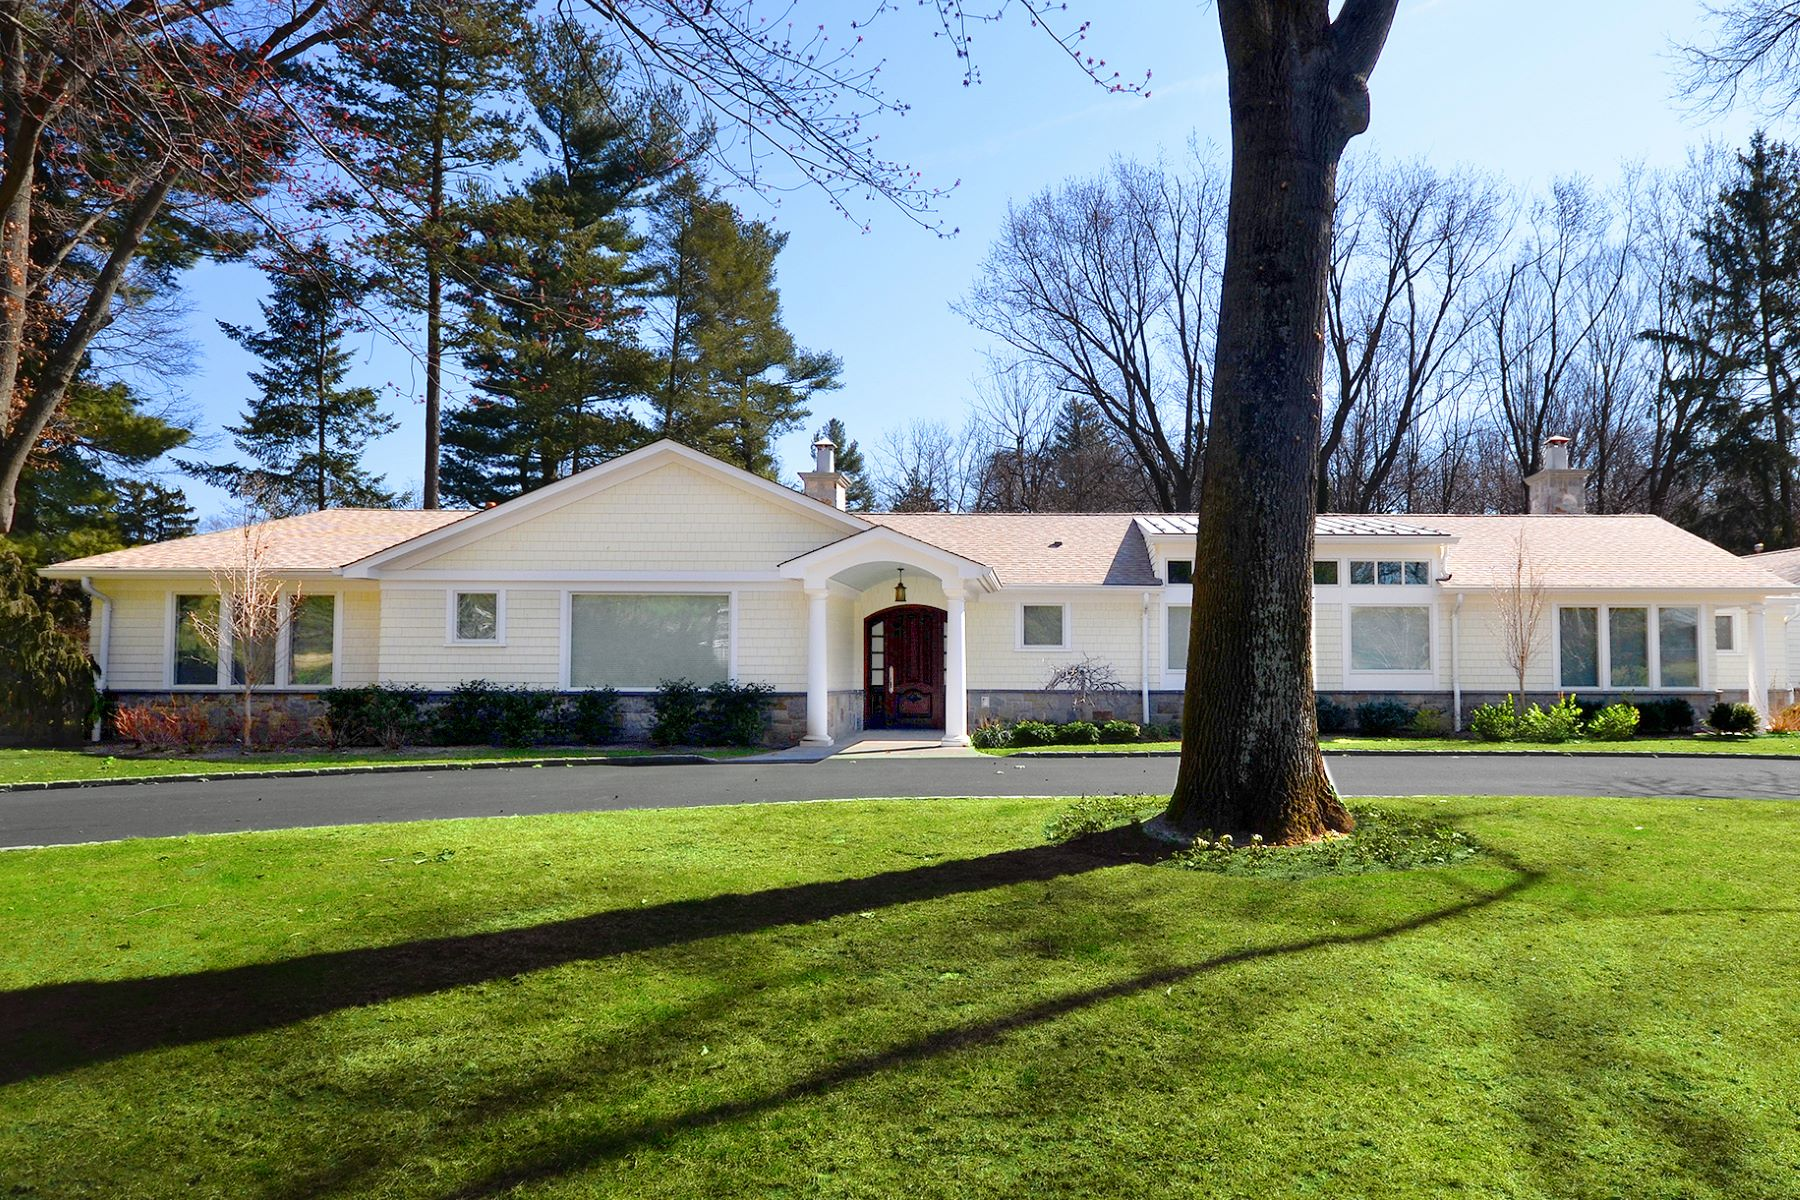 Single Family Home for Sale at Ranch 10 Woodland Dr Sands Point, New York, 11050 United States